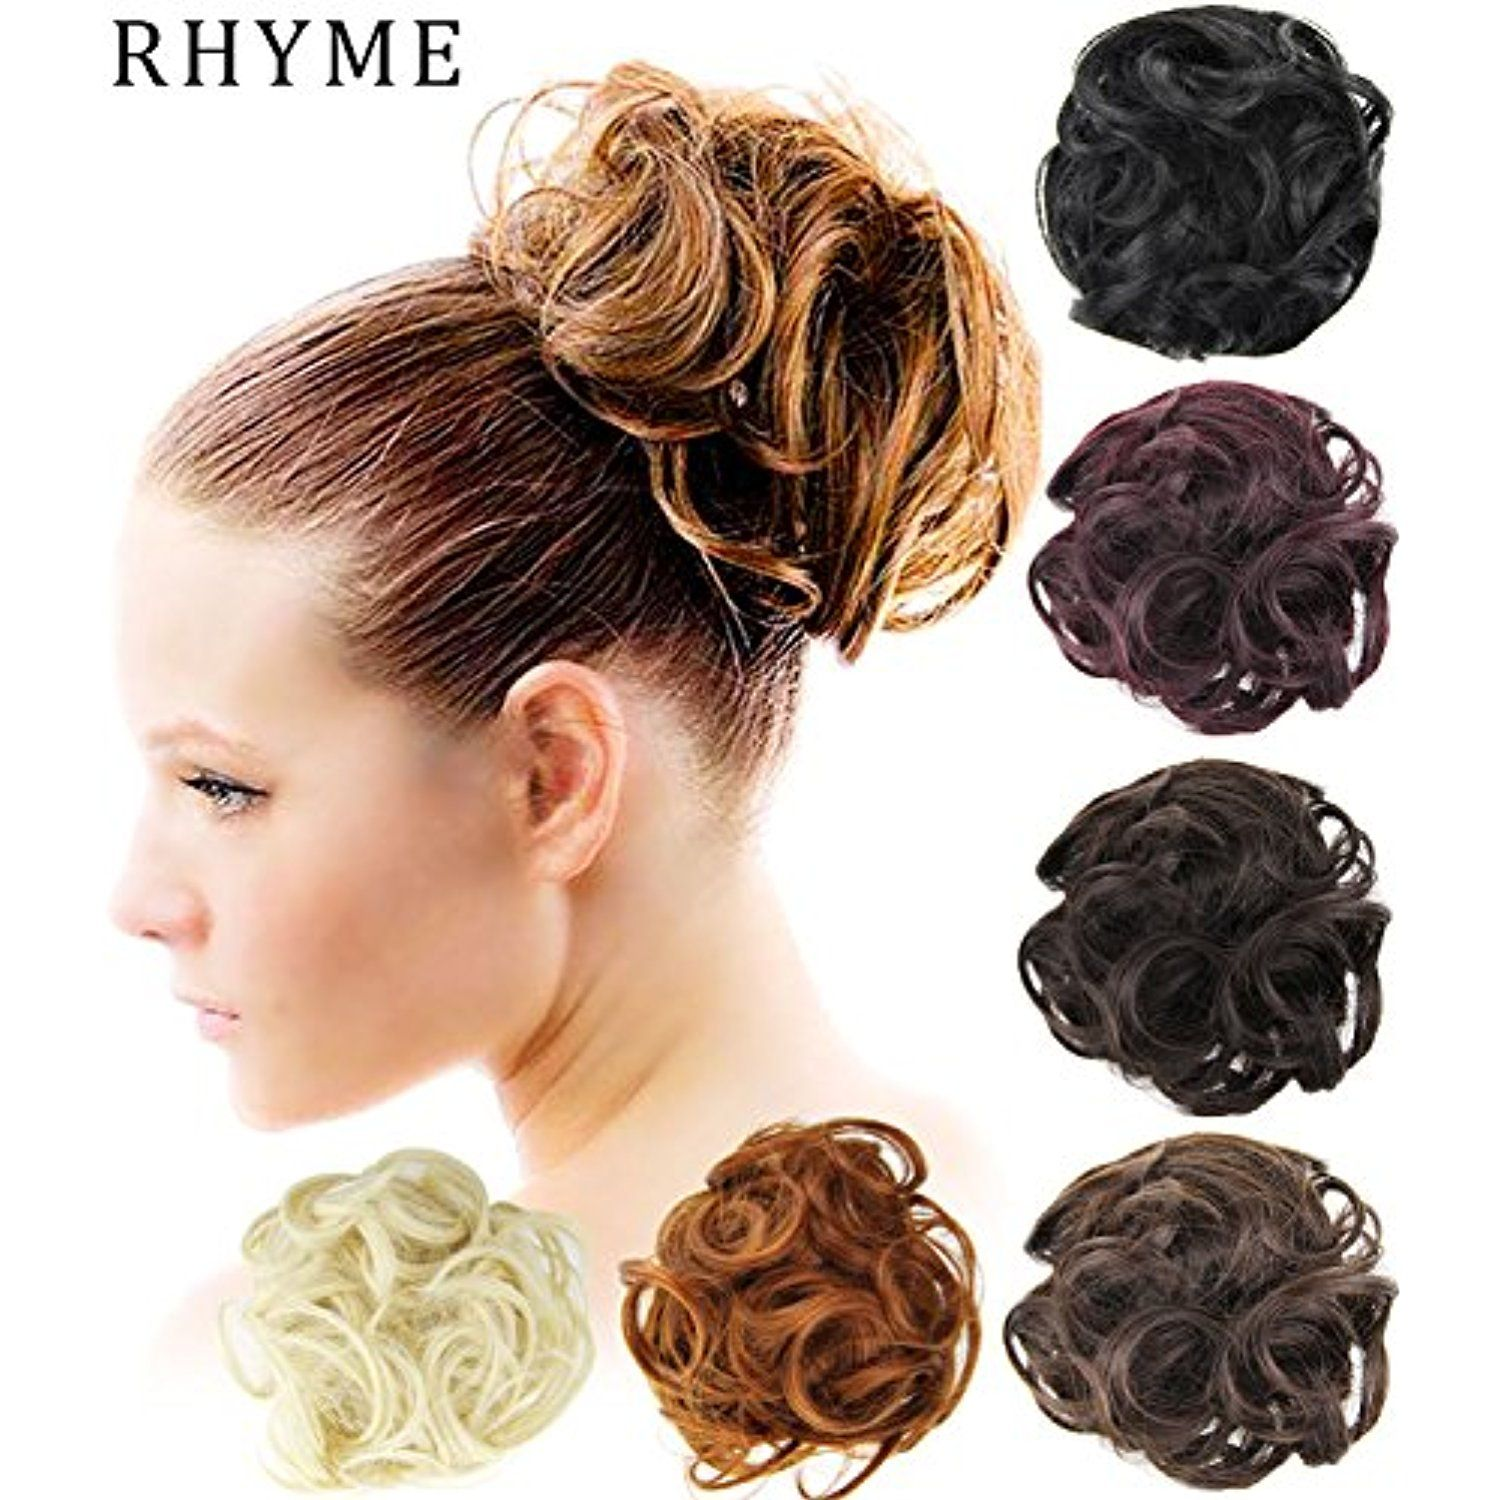 Rhyme Linen Scrunchie Bun Up Do